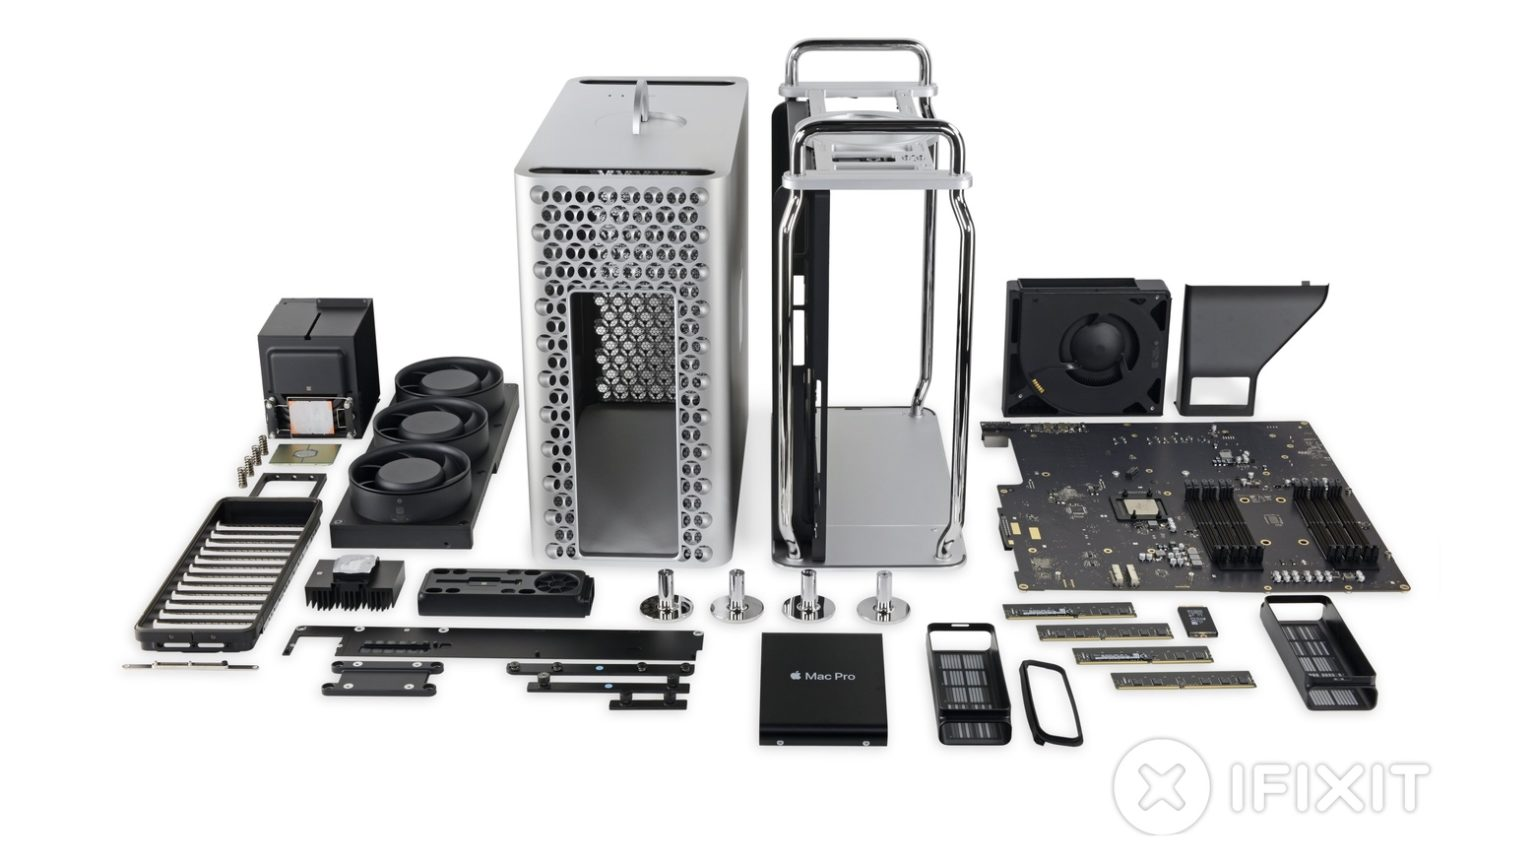 A 2019 Mac Pro after an iFixit tear down